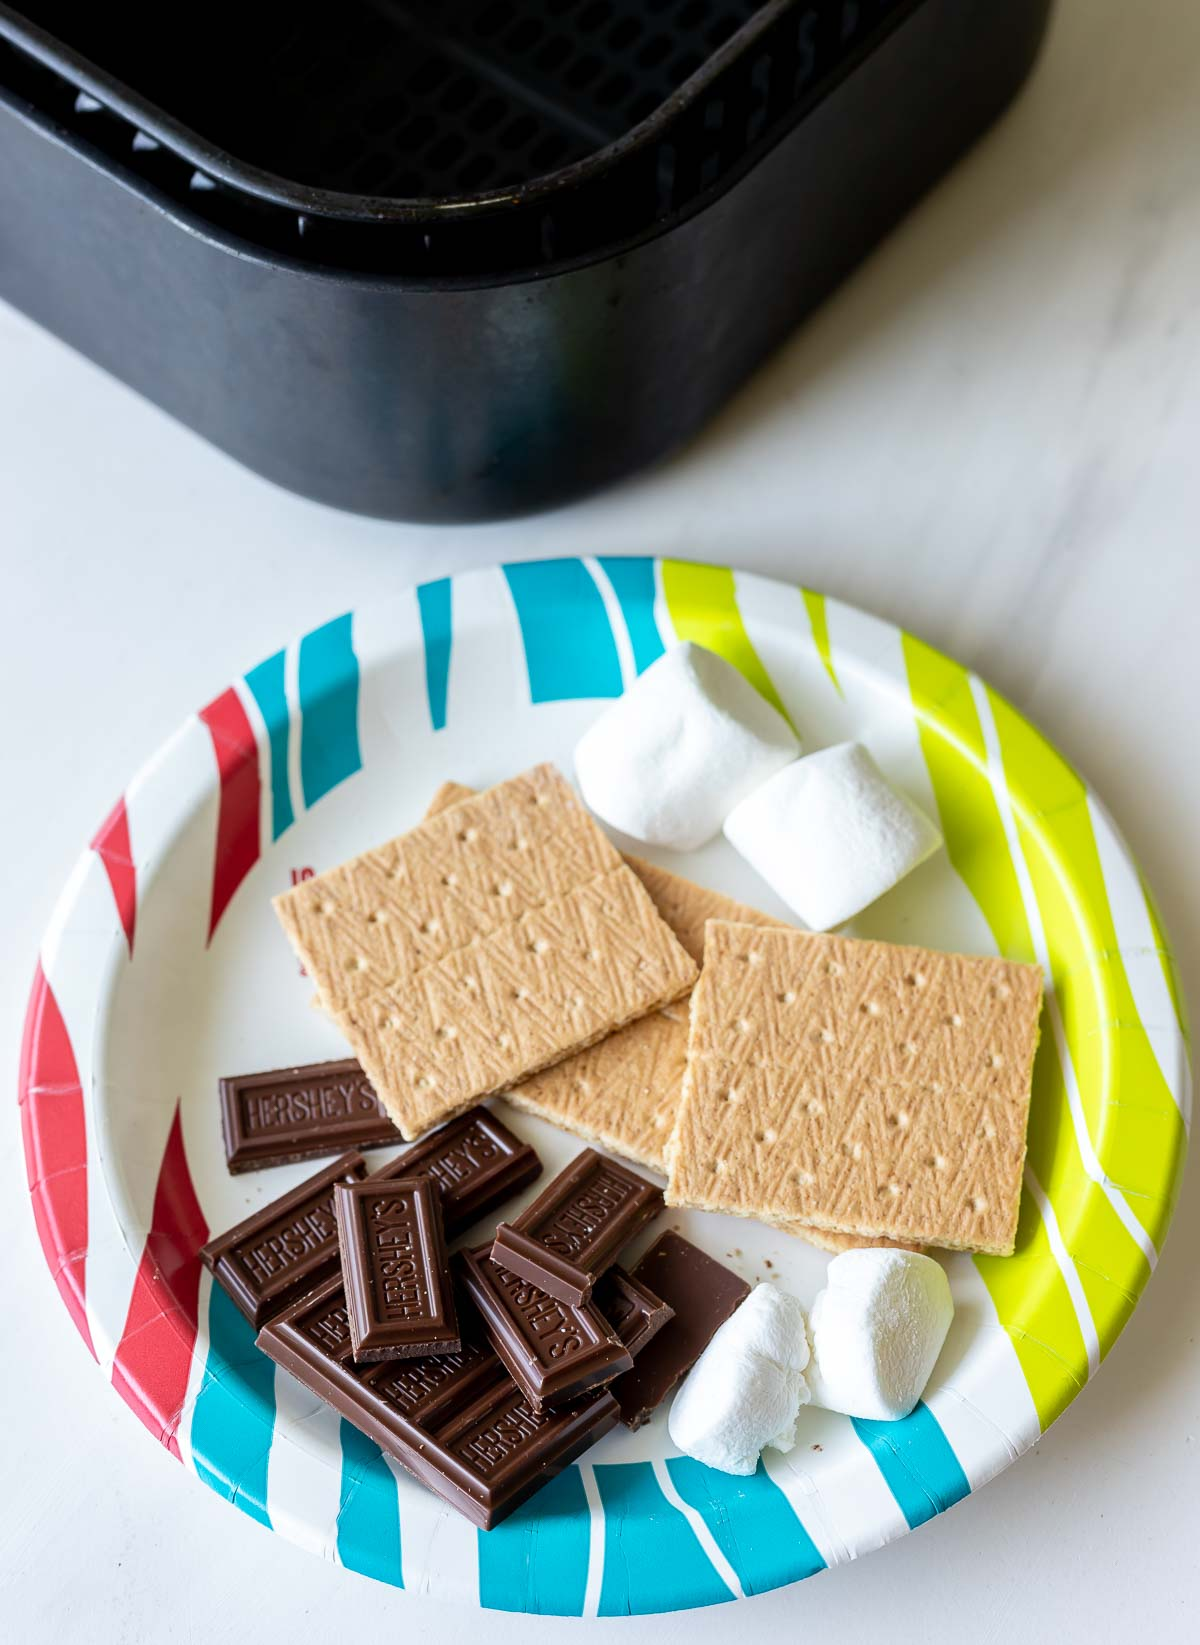 smores ingredients on paper plate